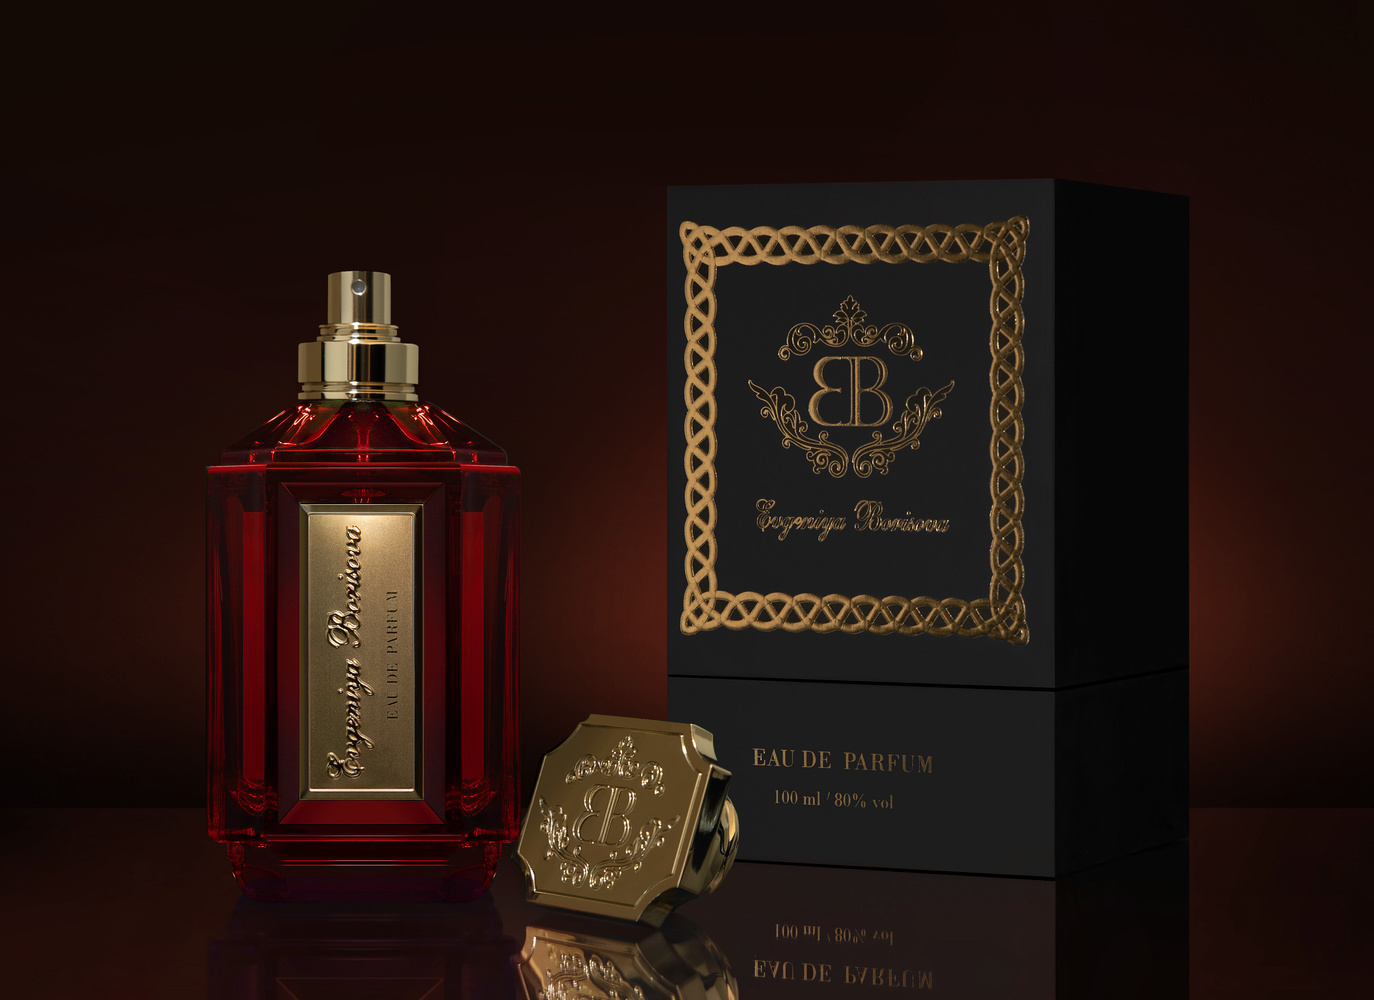 Commercial perfume product shoot by Dilyana Hezhaz